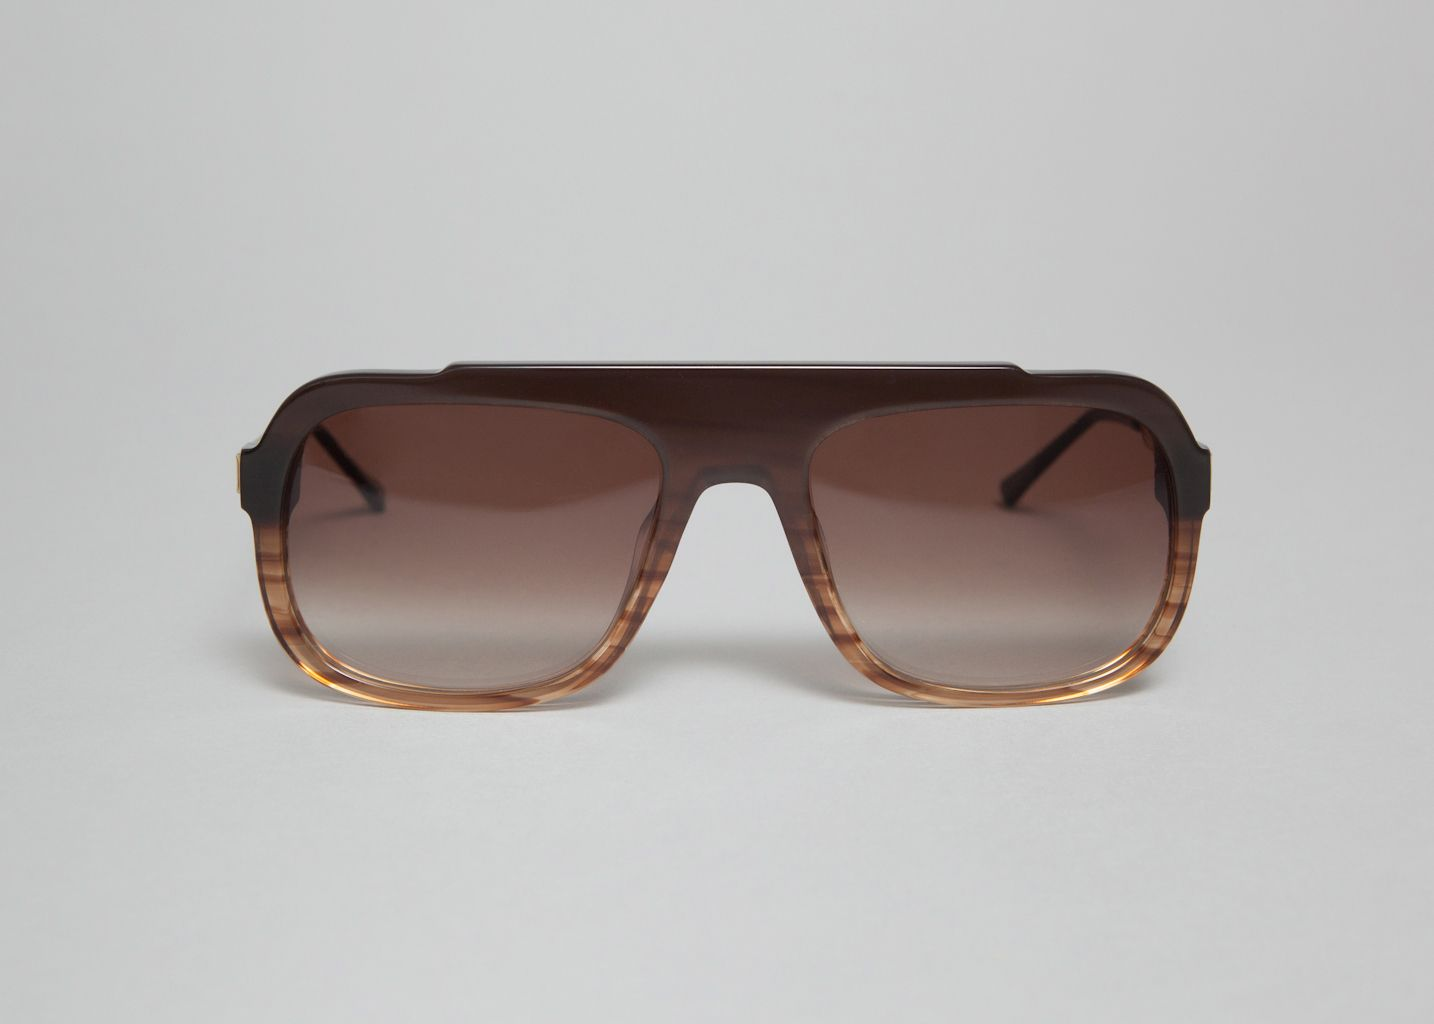 Lunettes Bowery - Thierry Lasry